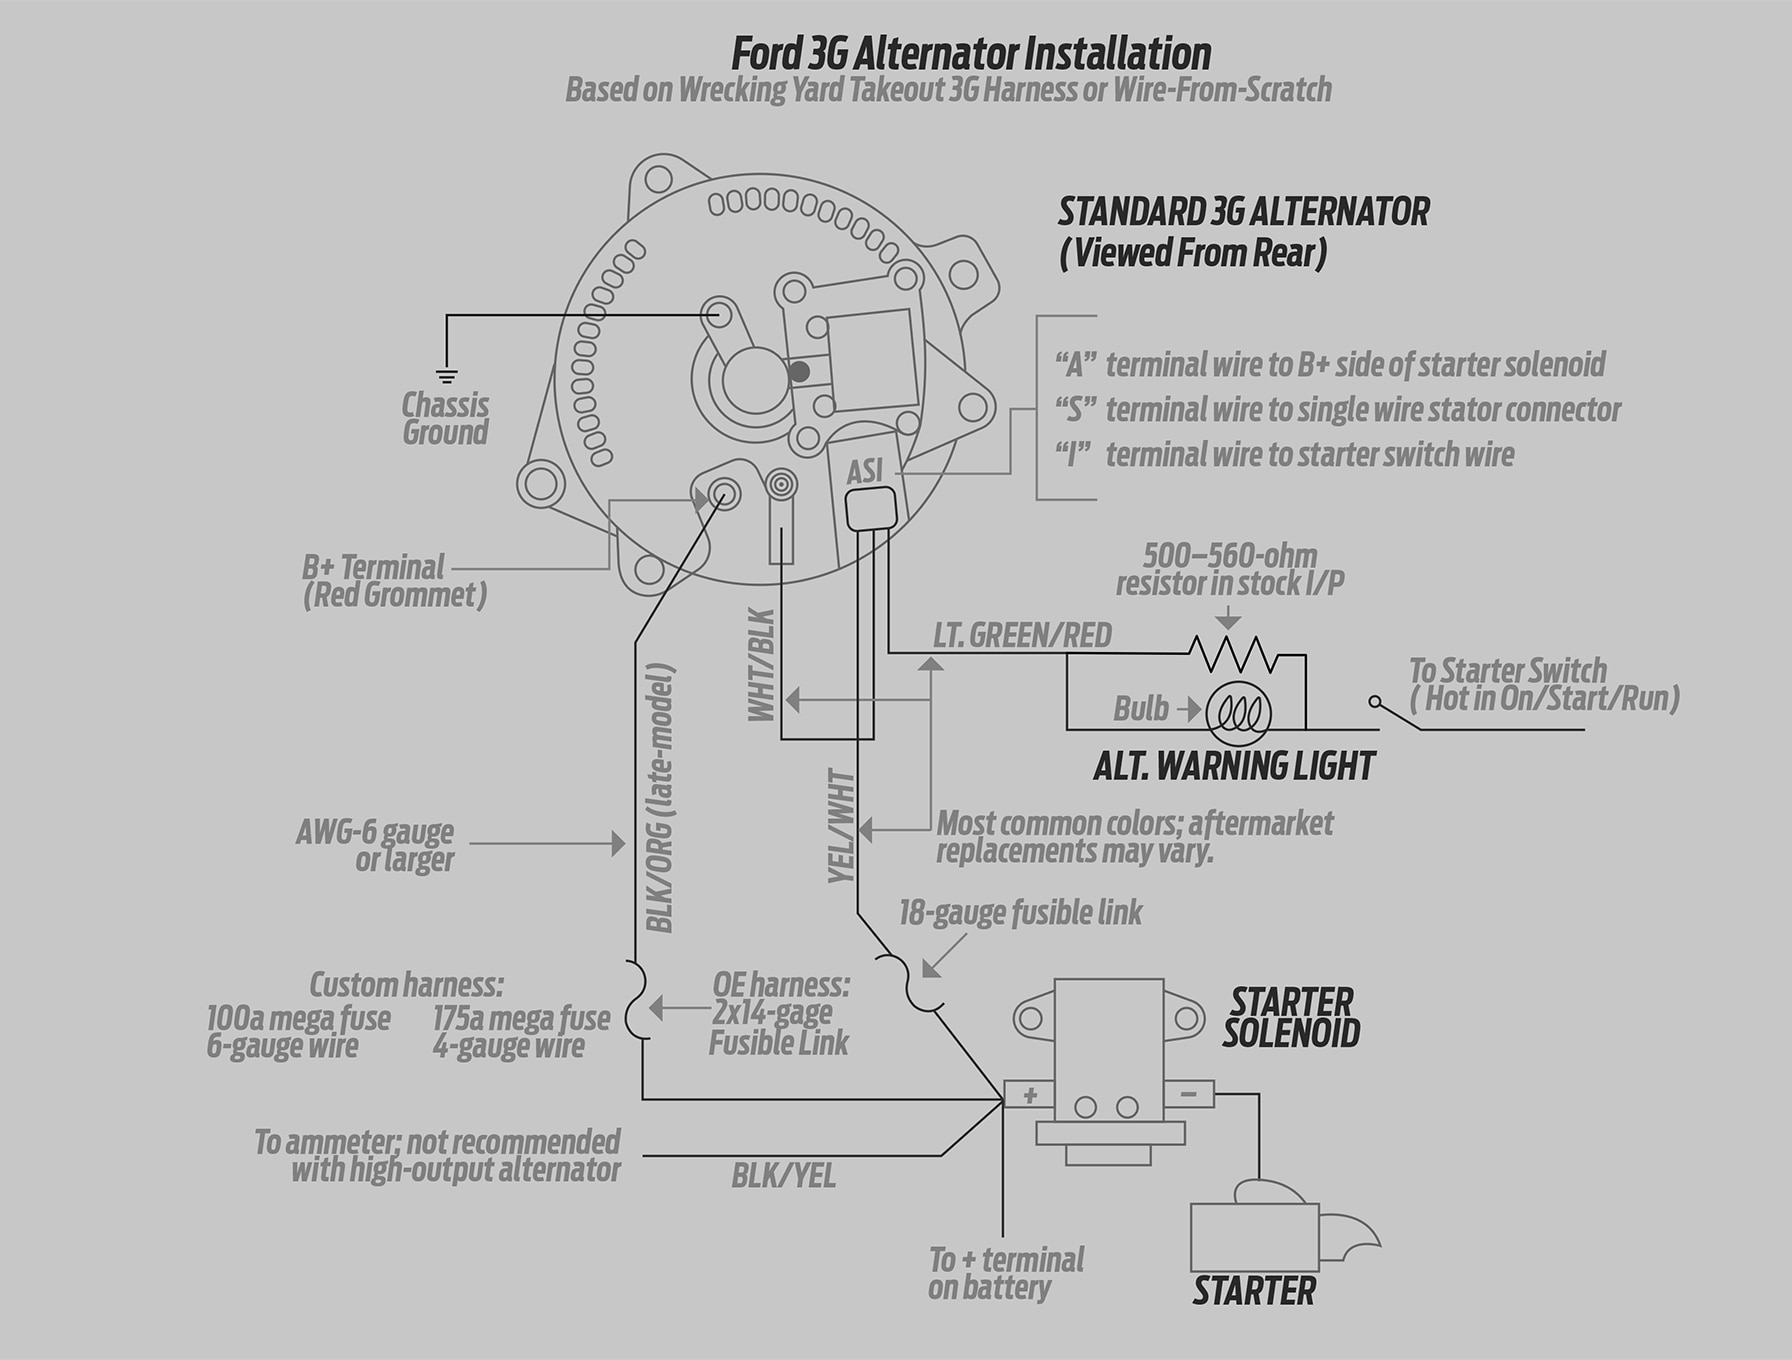 hight resolution of ford 3g alternator wiring wiring diagram experthow to install a high output ford 3g alternator into